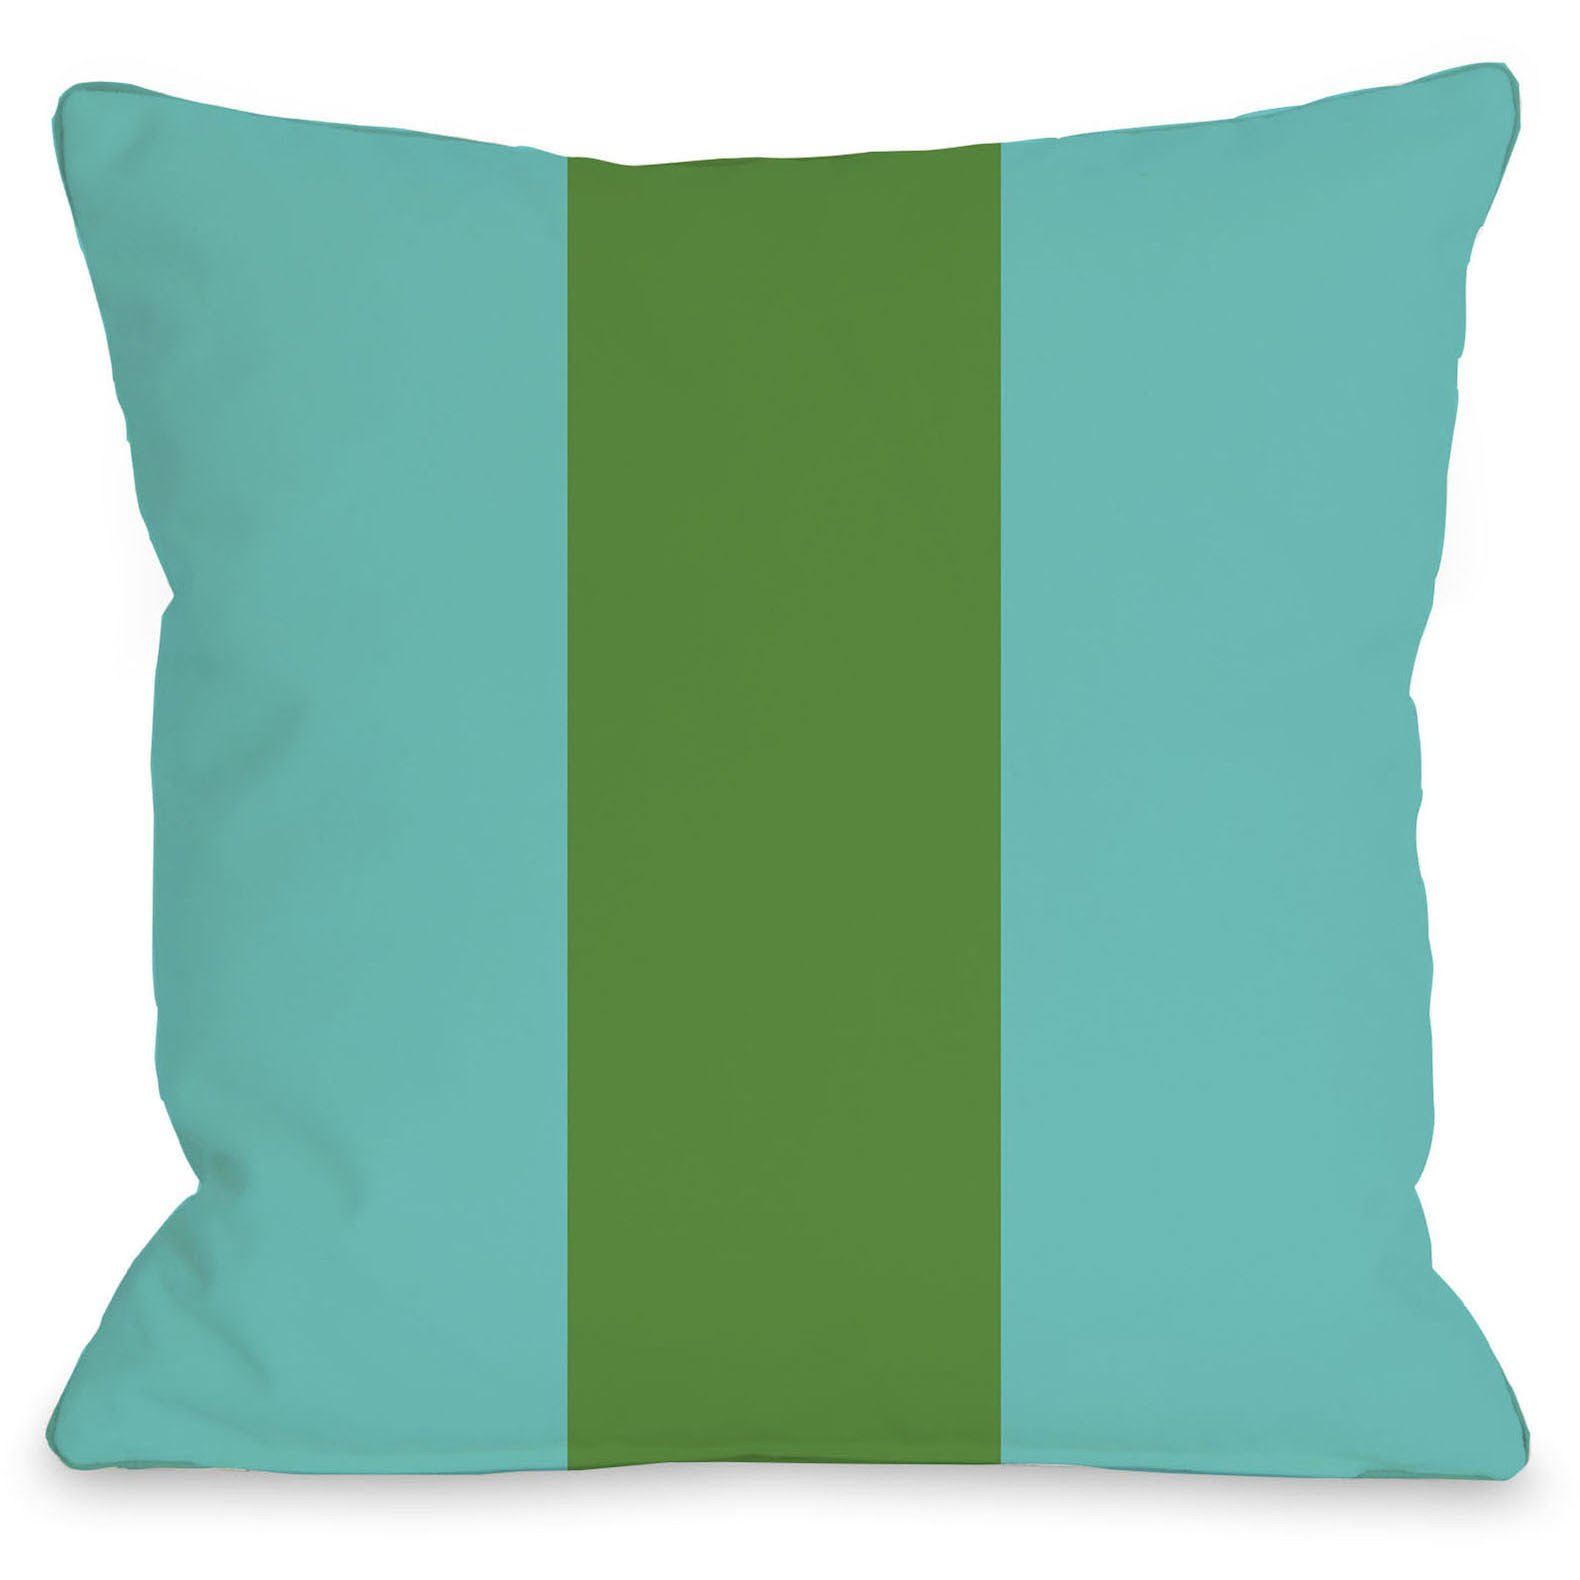 Main Line Outdoor Throw Pillow By Onebellacasa Turquoise Green 26